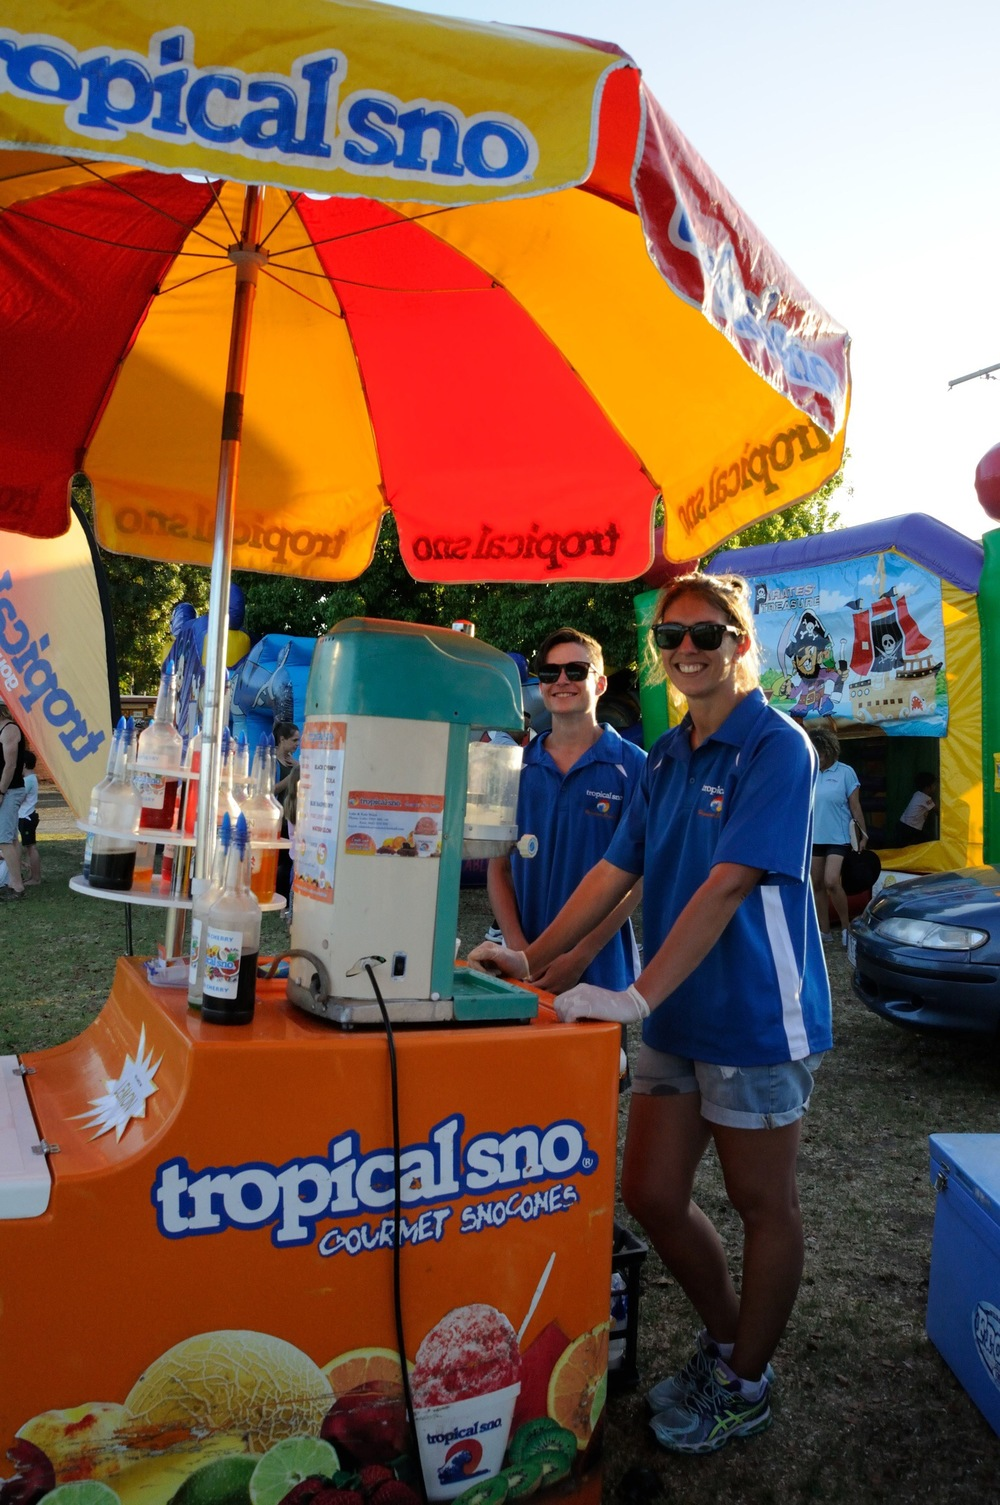 The snow cones were welcomed by all in the scorching weather